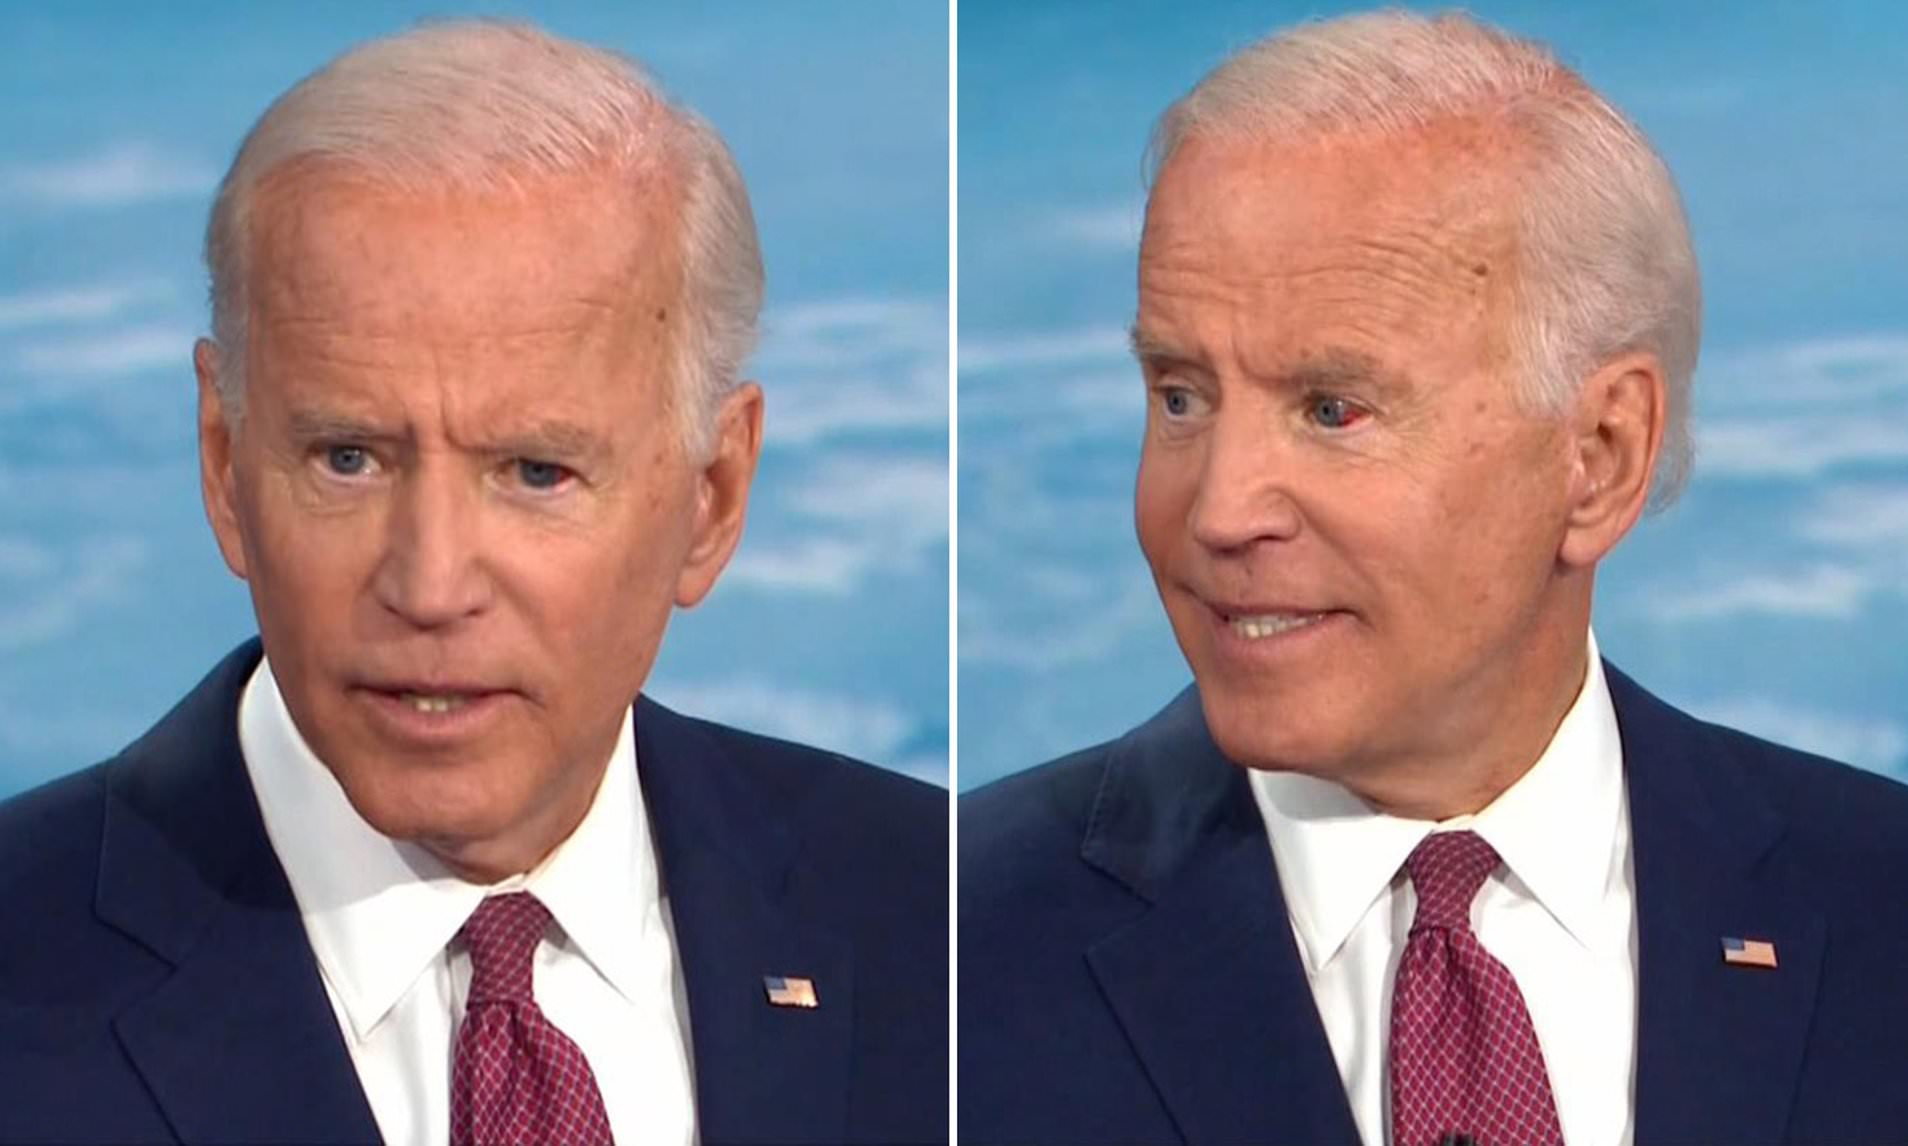 Biden Stuns All As Health Scare Takes Place